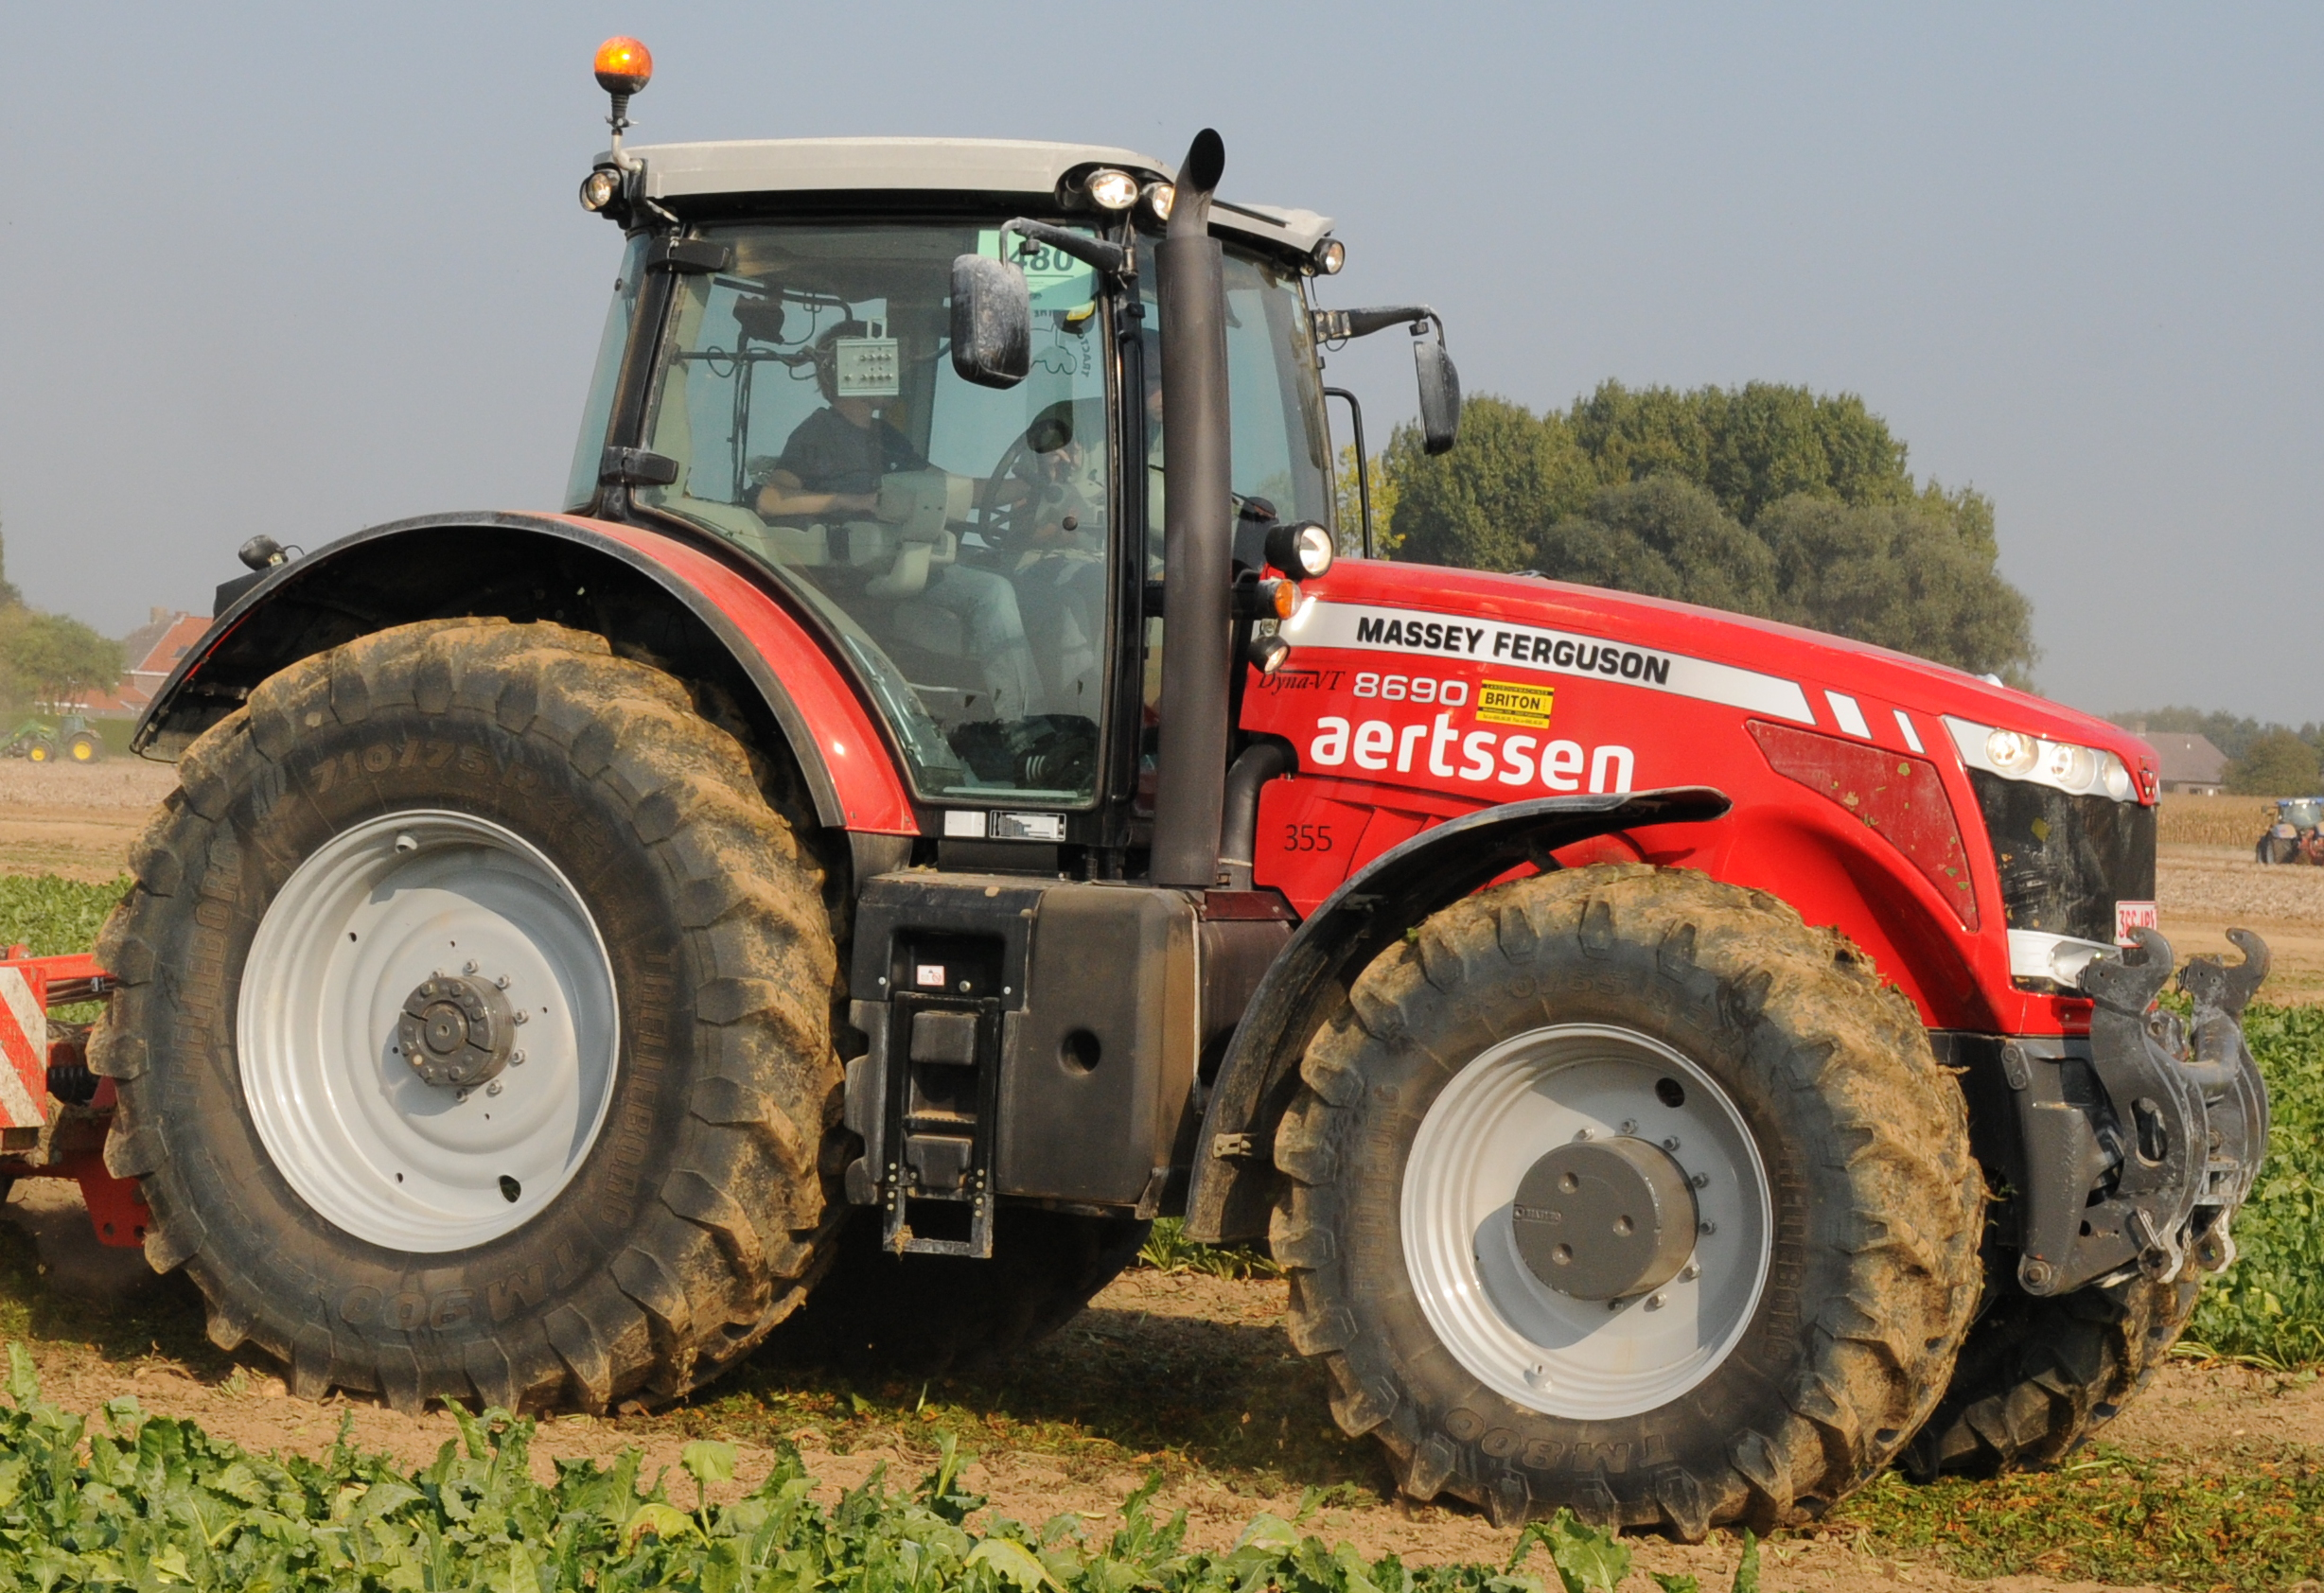 Massey ferguson mf photo - 2